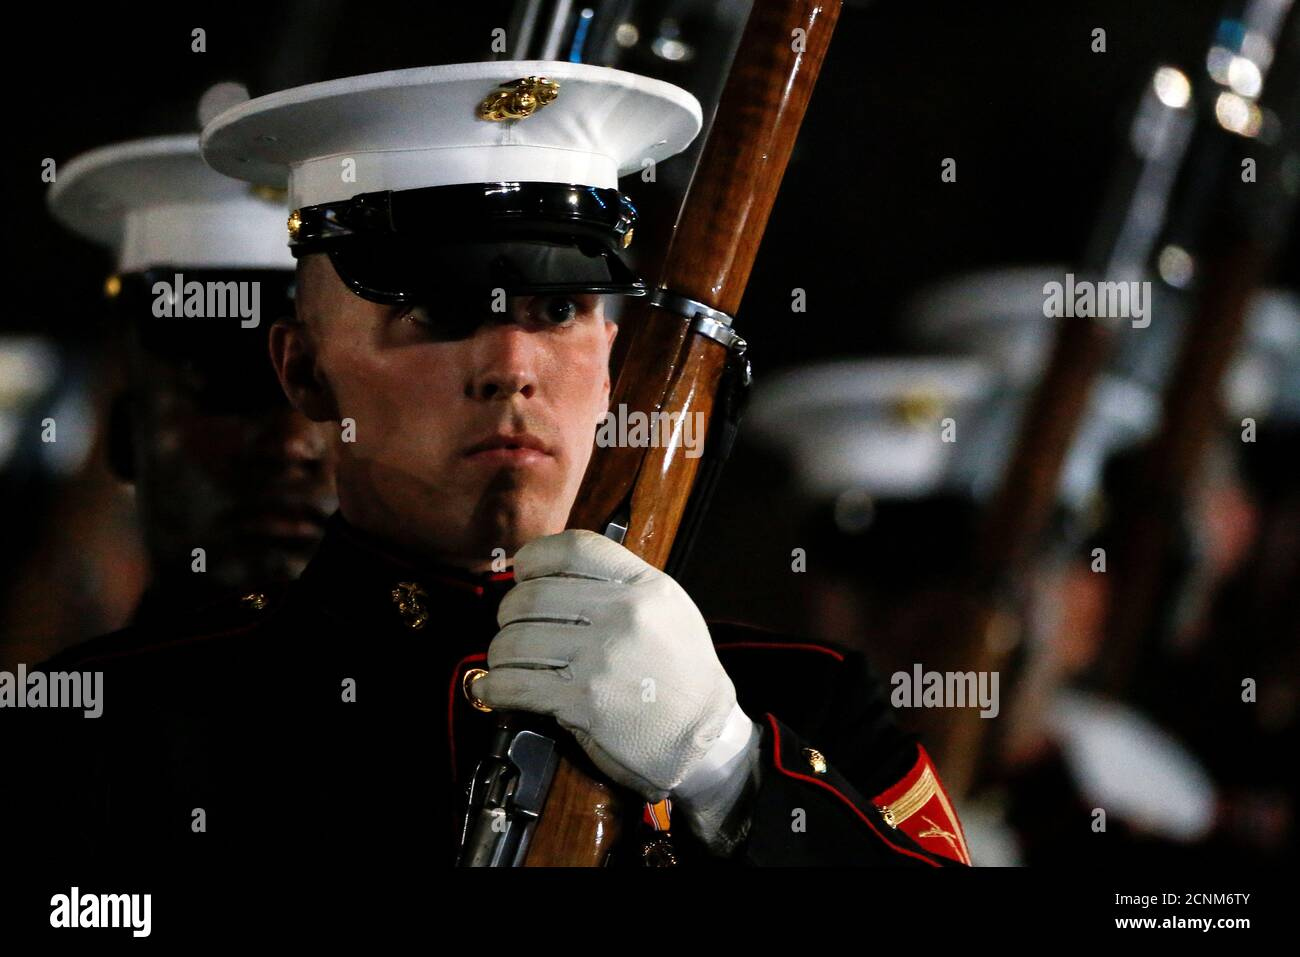 Members of the U.S. Marine Corps Silent Drill team take part in the opening ceremonies of the Invictus Games in Orlando Florida, U.S., May 8, 2016.  REUTERS/Carlo Allegri Stock Photo